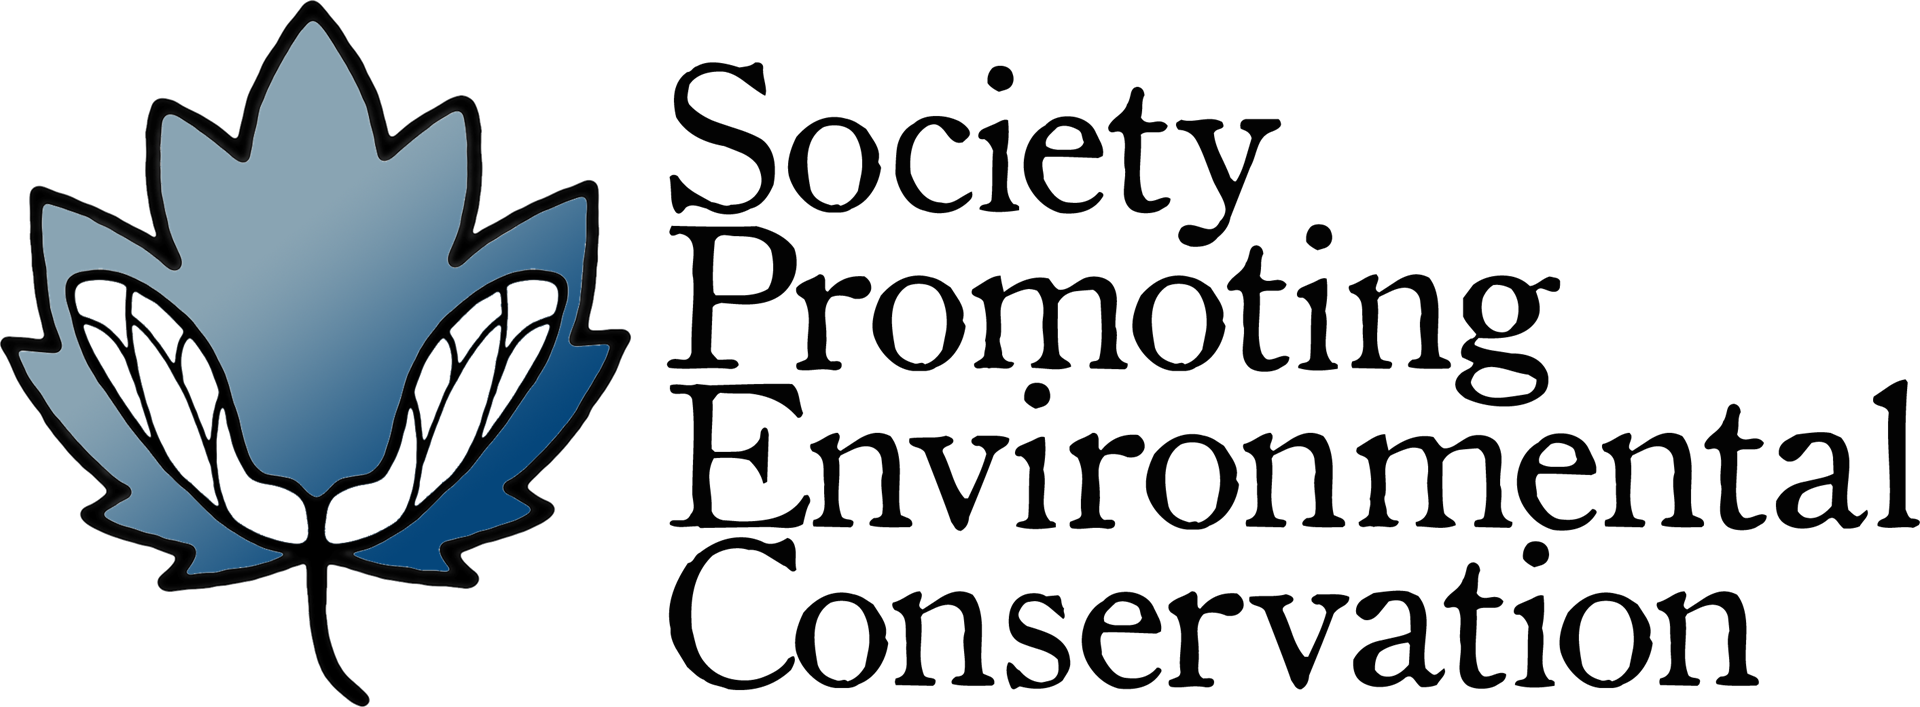 Society Promoting Environmental Conversation logo